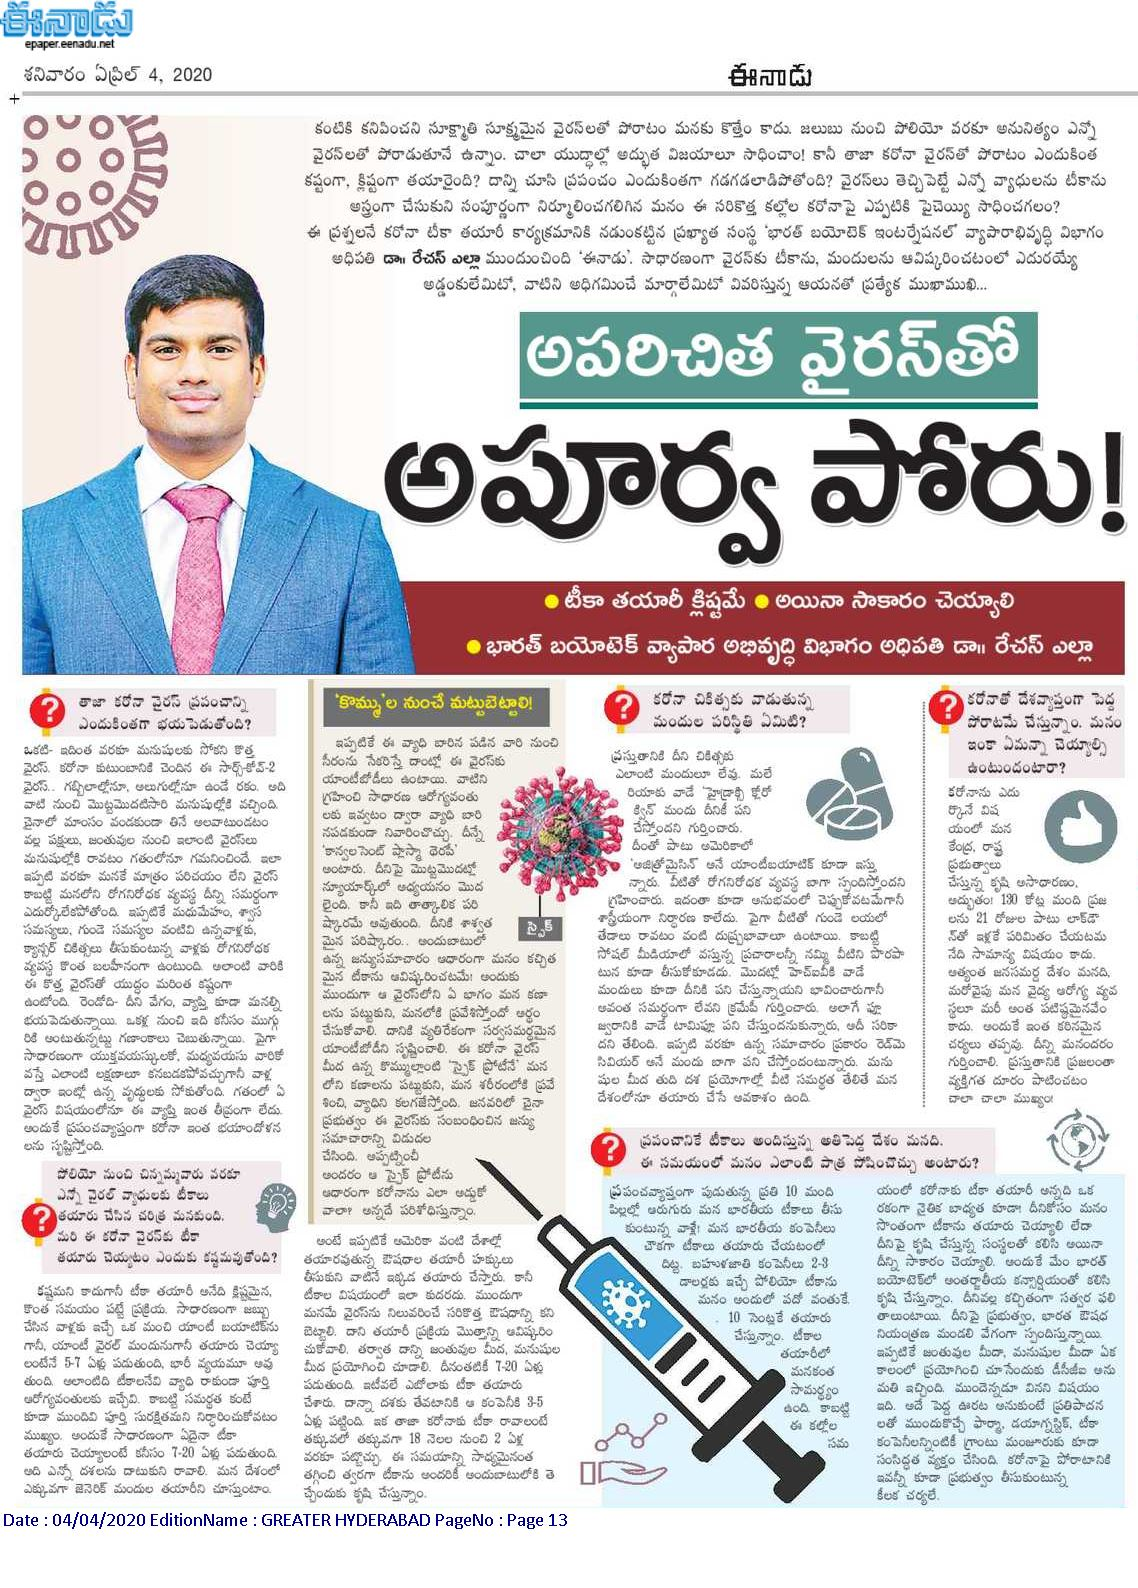 Eenadu Corona: Staff Dying Management Sleeping